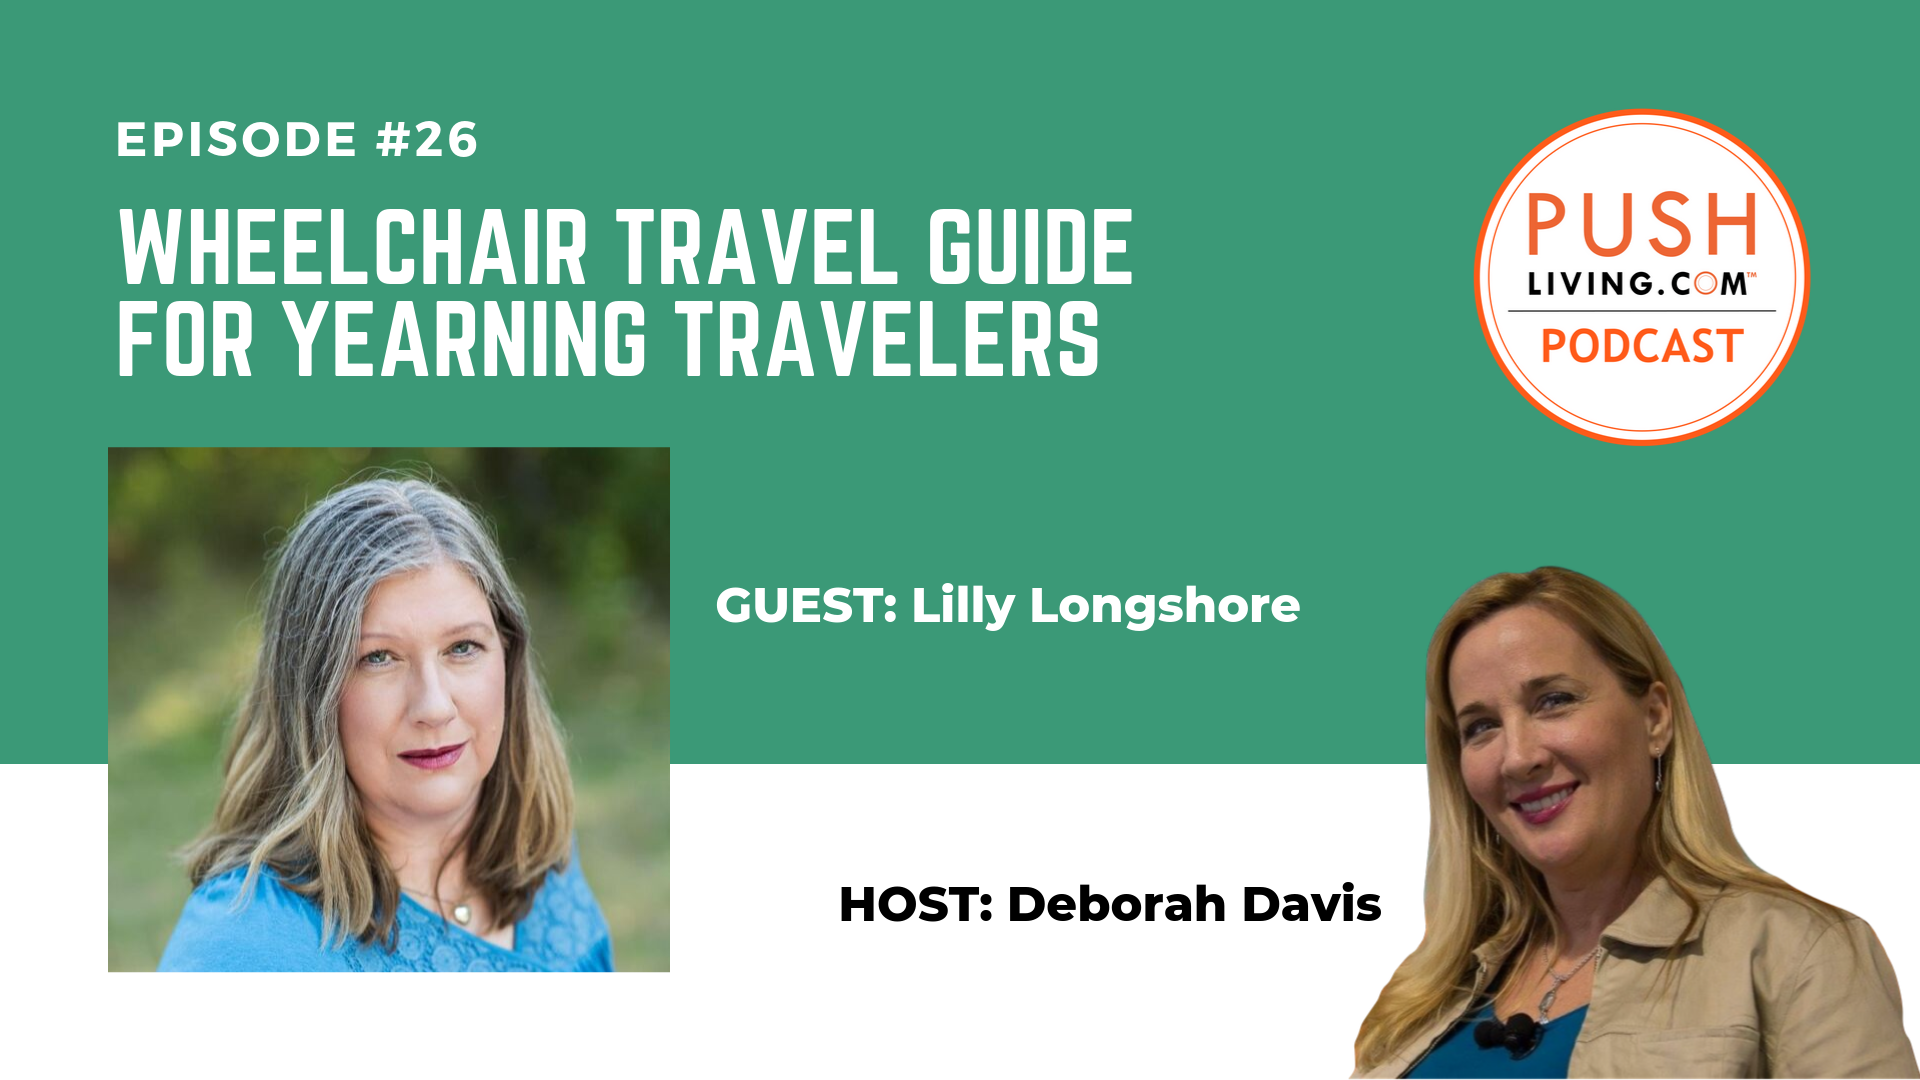 Podcast26 Cover 3 - PUSHLiving Podcast #26: Wheelchair Travel Guide for Yearning Travelers with Lilly Longshore